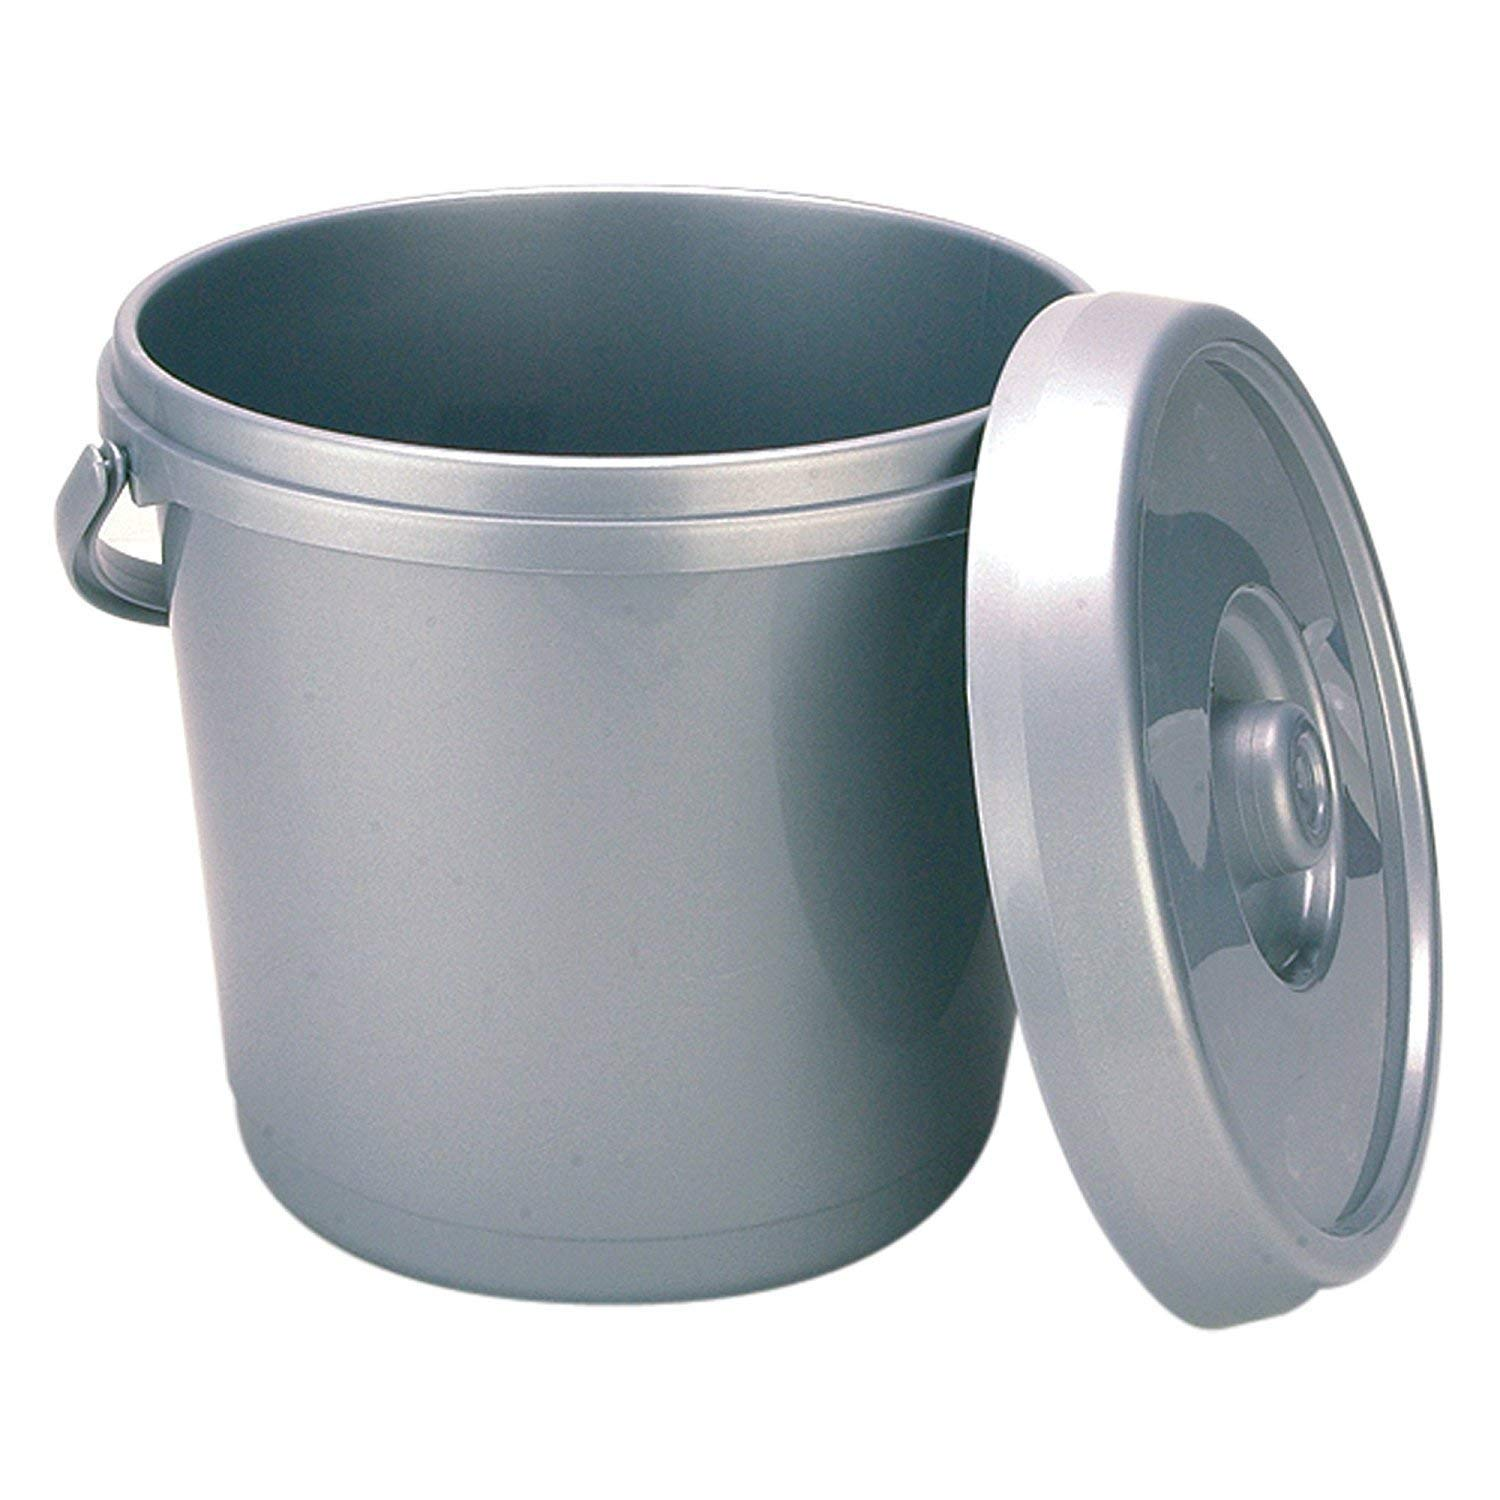 14 Litre Nappy Bucket in Black Other